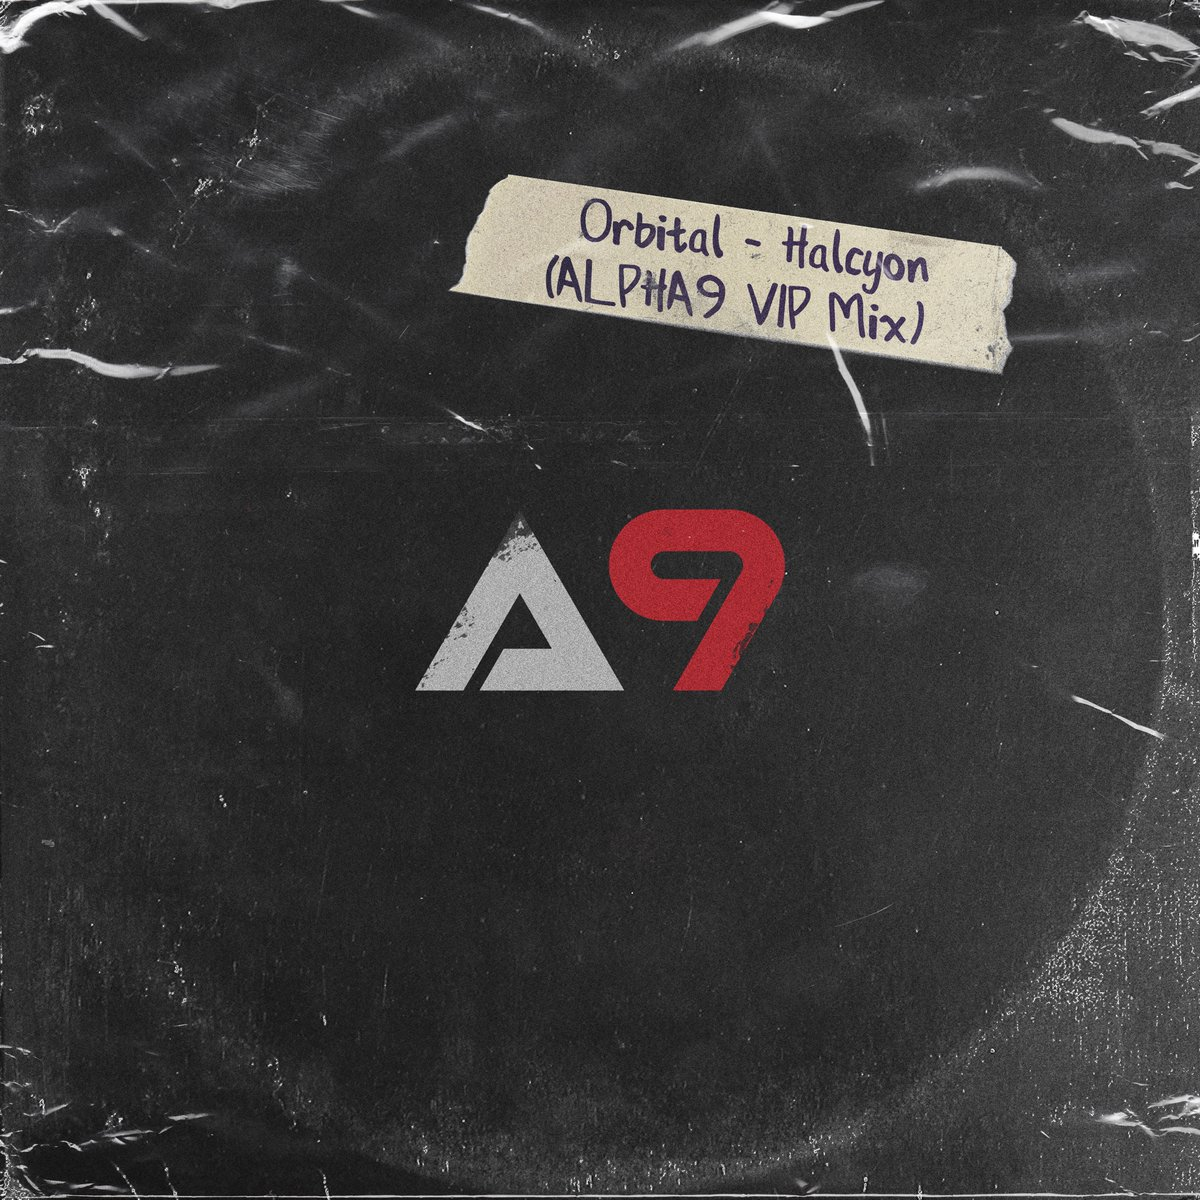 "My ALPHA 9 VIP Mix for Orbital's ""Halcyon"" is now available on my Telegram channel ❤️  https://t.co/pLLGcYHfnm https://t.co/F6jEIxjMvf"